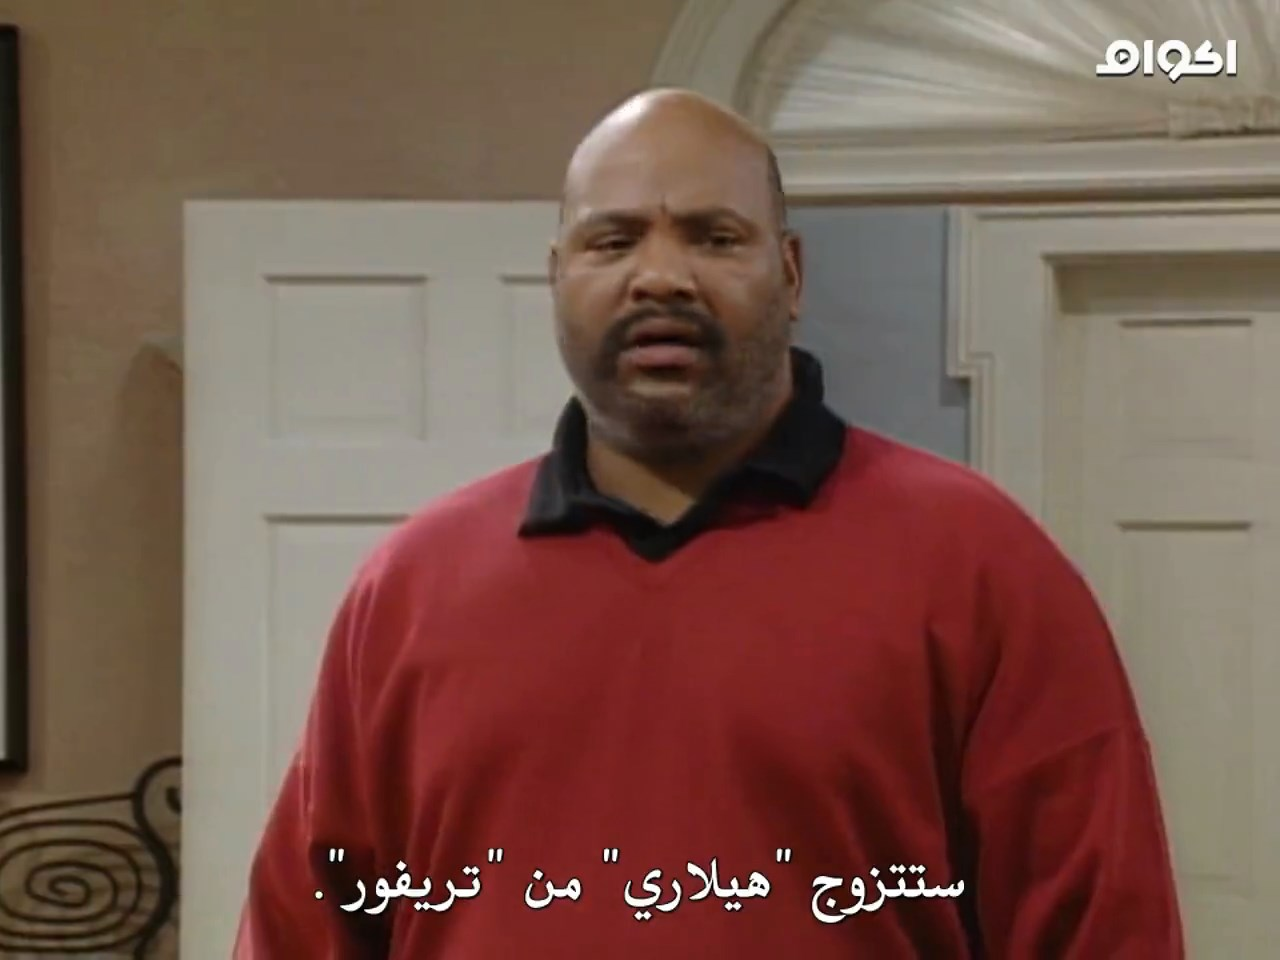 The Fresh Prince of Bel-Air,The Fresh Prince of Bel-Air S04,The Fresh Prince of Bel-Air Season 4,The Fresh Prince of Bel-Air مترجم,The Fresh Prince of Bel-Air Will Smith,ويل سميث